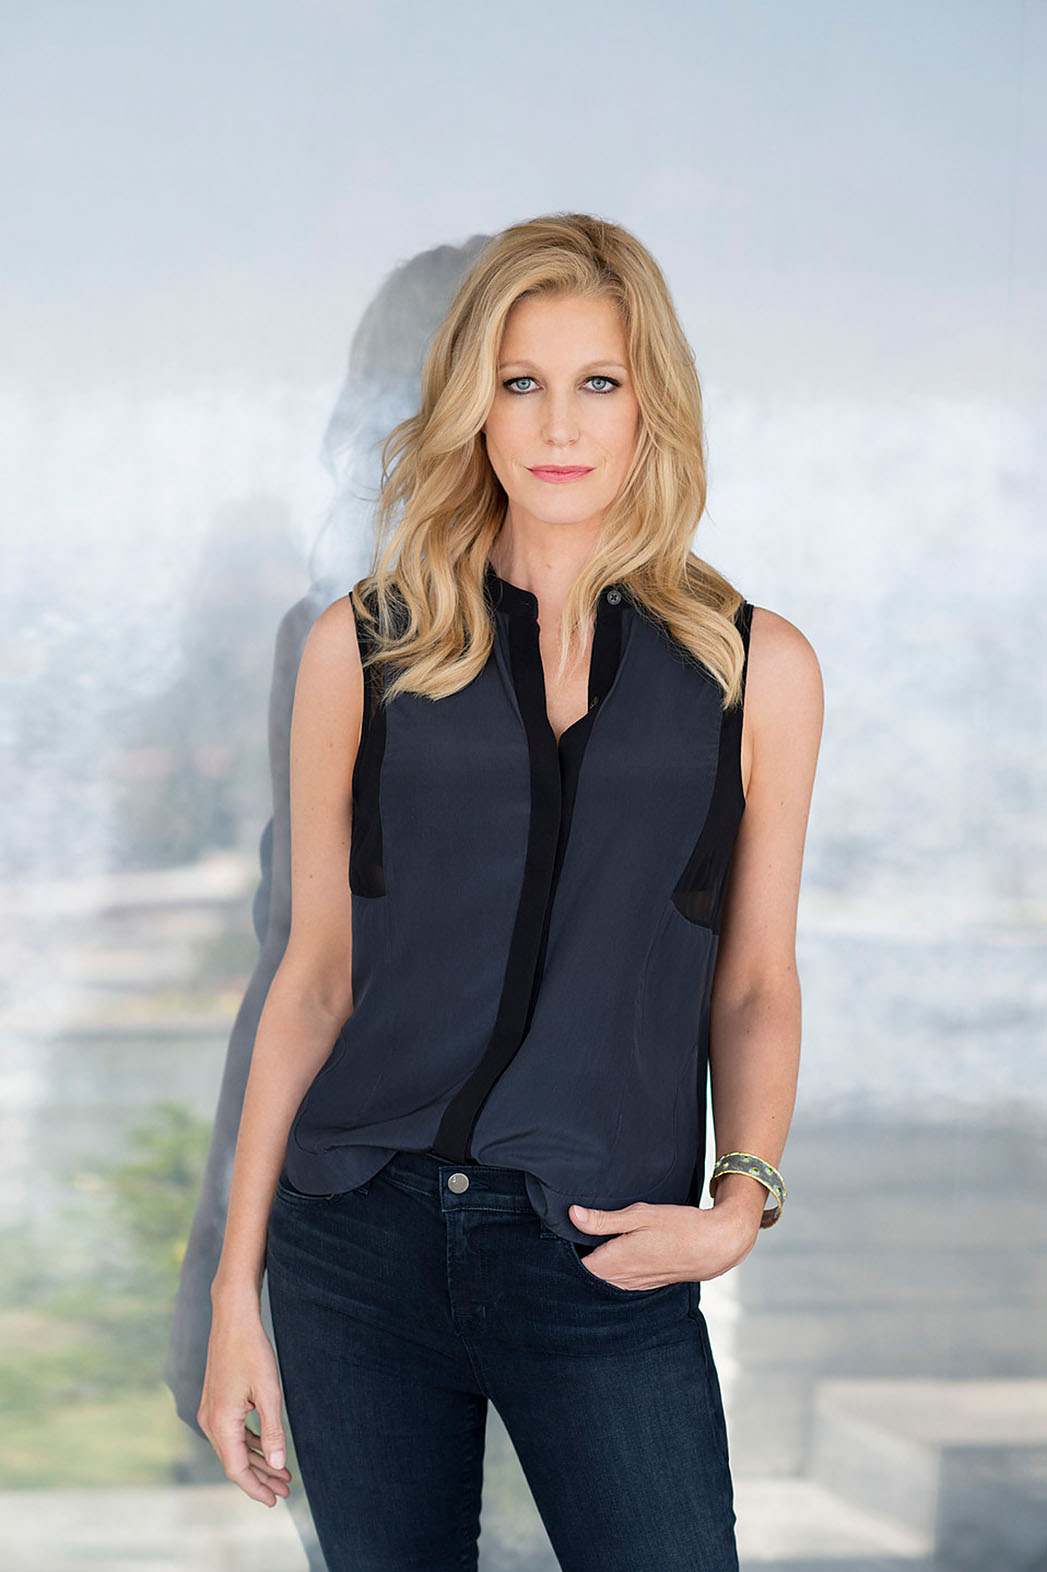 'Breaking Bad's' Anna Gunn to Co-Star in 'Criminal Minds ...